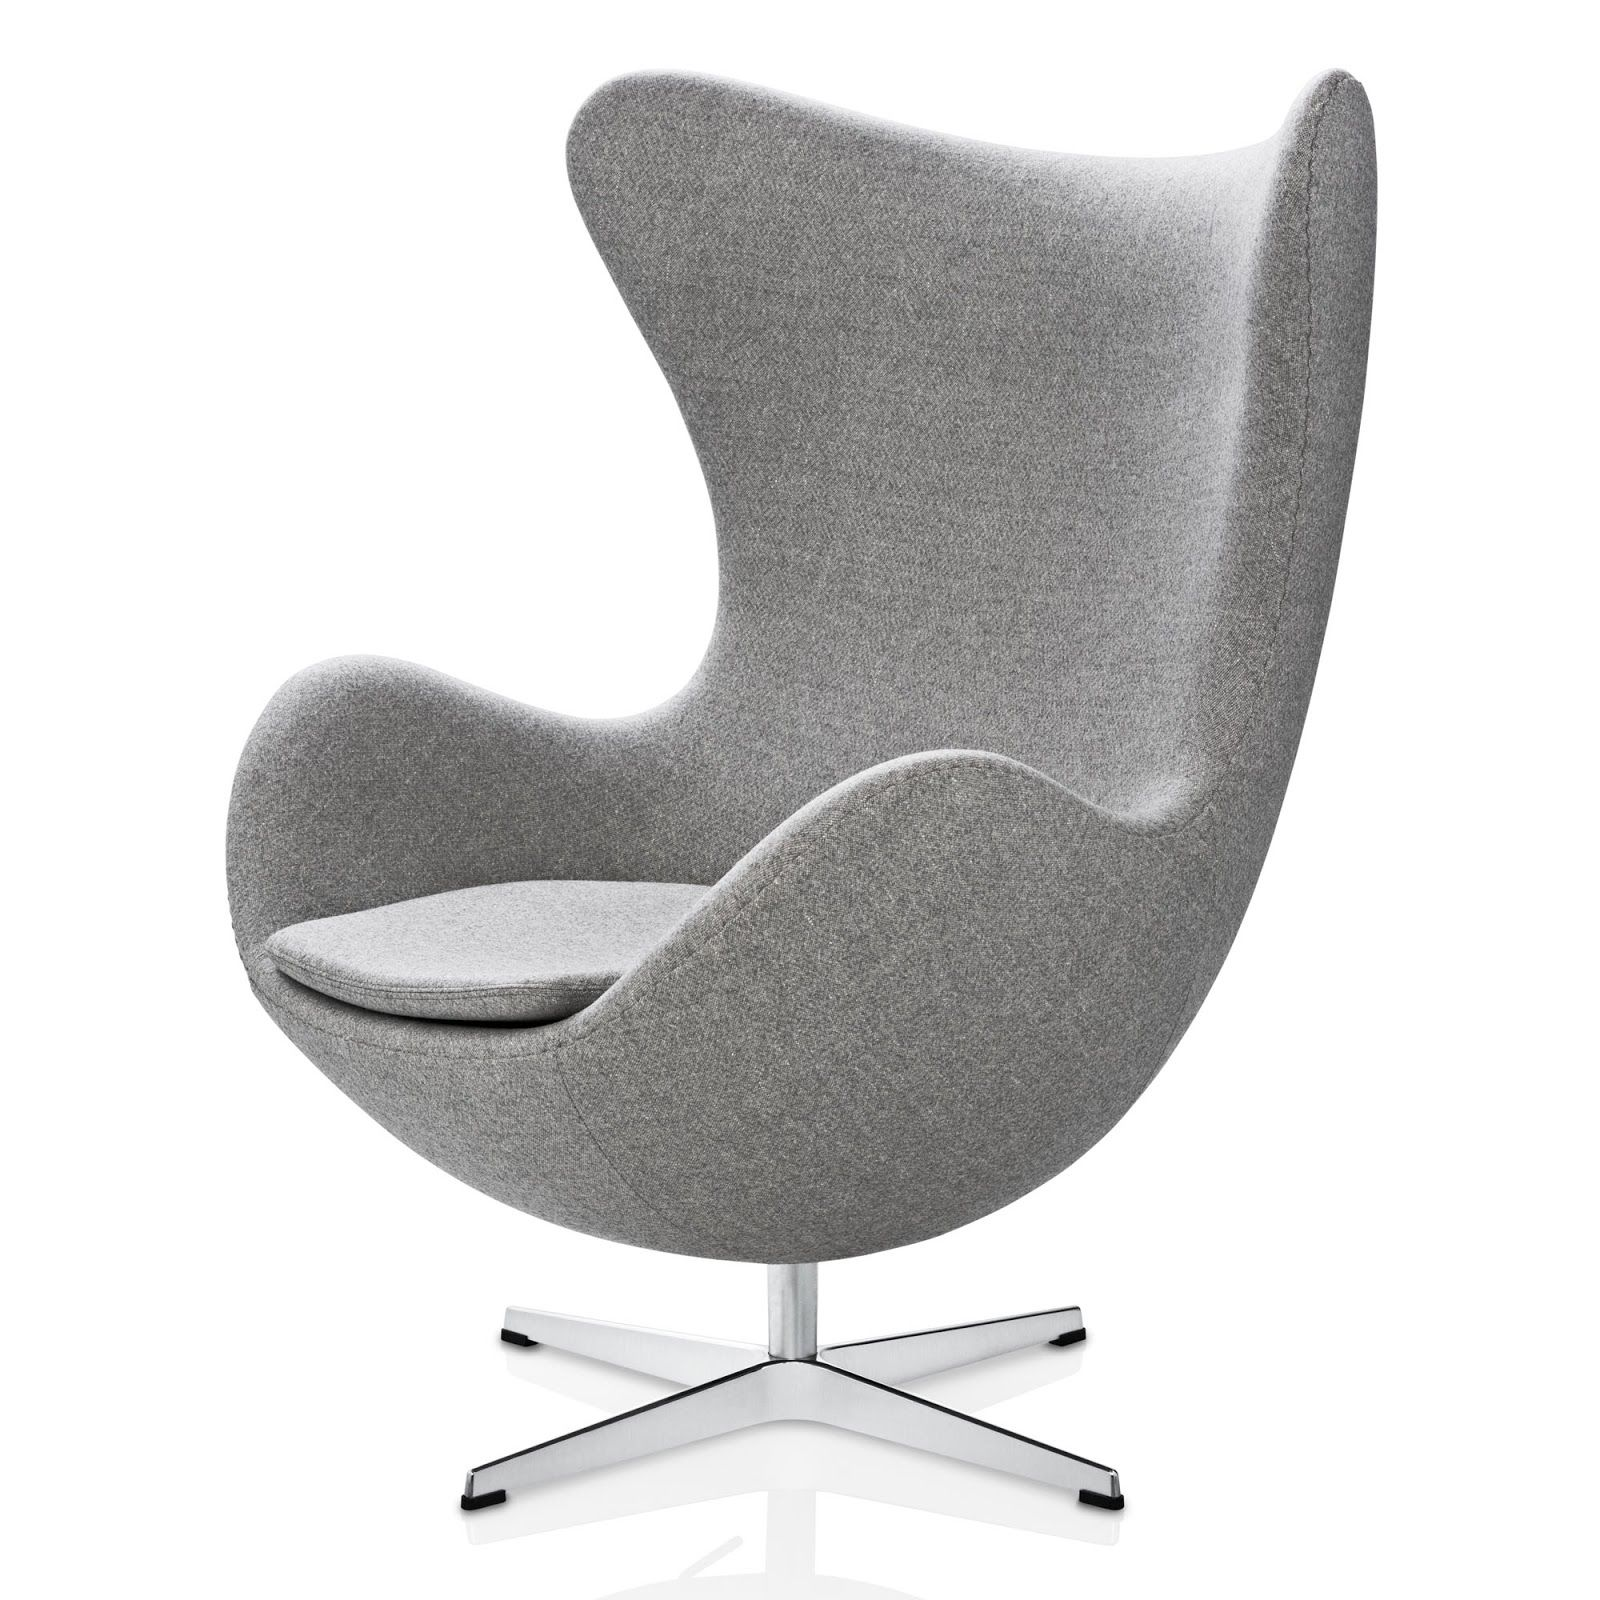 Arne jacobsen egg chair white - Arne Jacobsen Egg Chair In Light Gray Fabric Wellhouzz